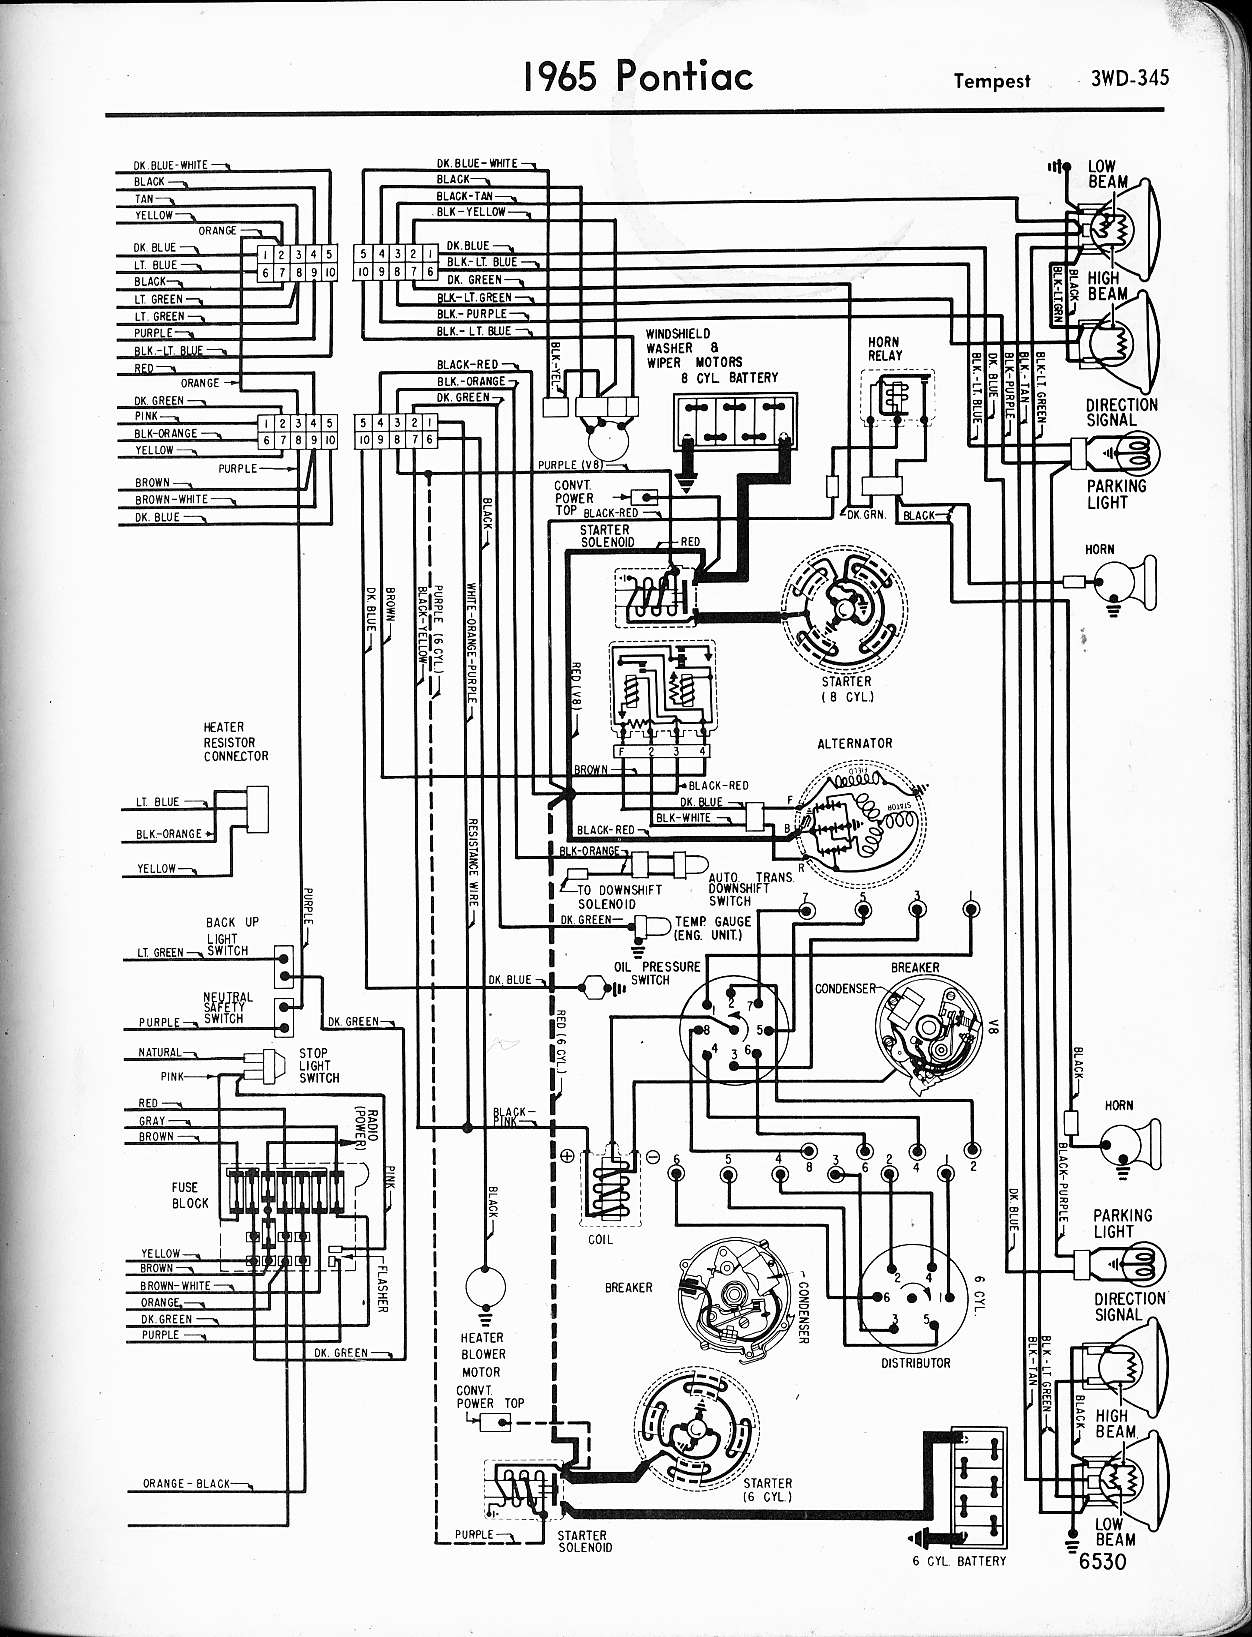 MWire5765 345 wallace racing wiring diagrams 69 camaro convertible top wiring diagram at bakdesigns.co